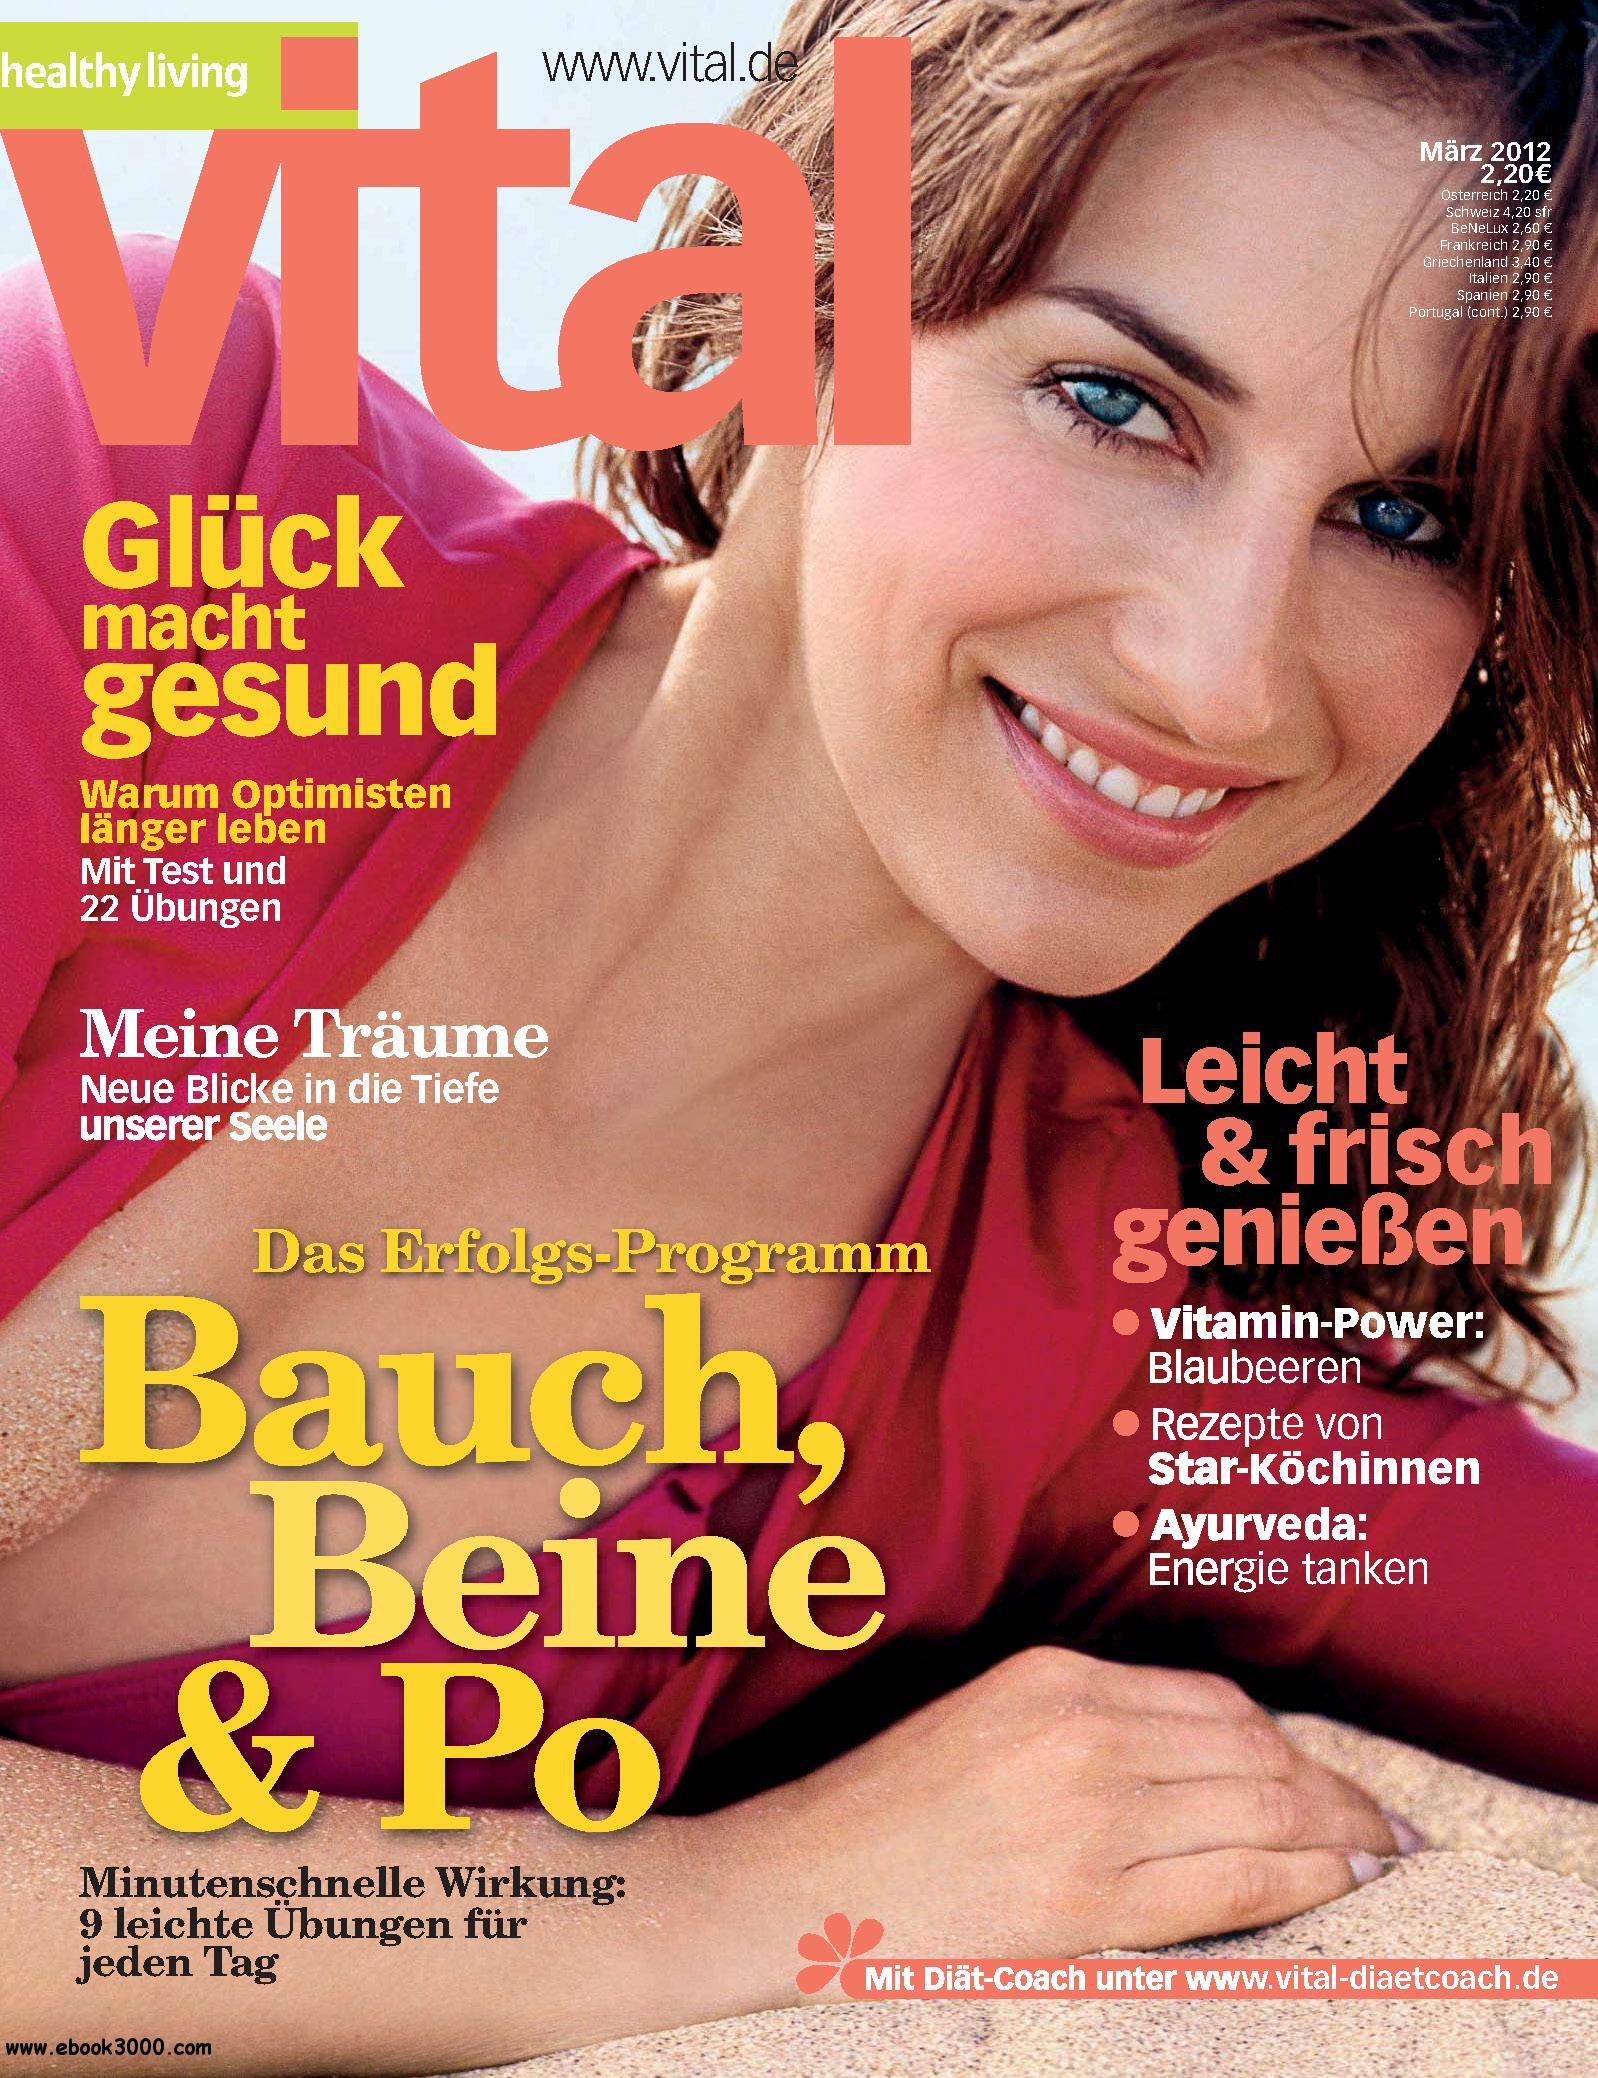 Vital (Wellness-Magazin) Marz 2012 free download